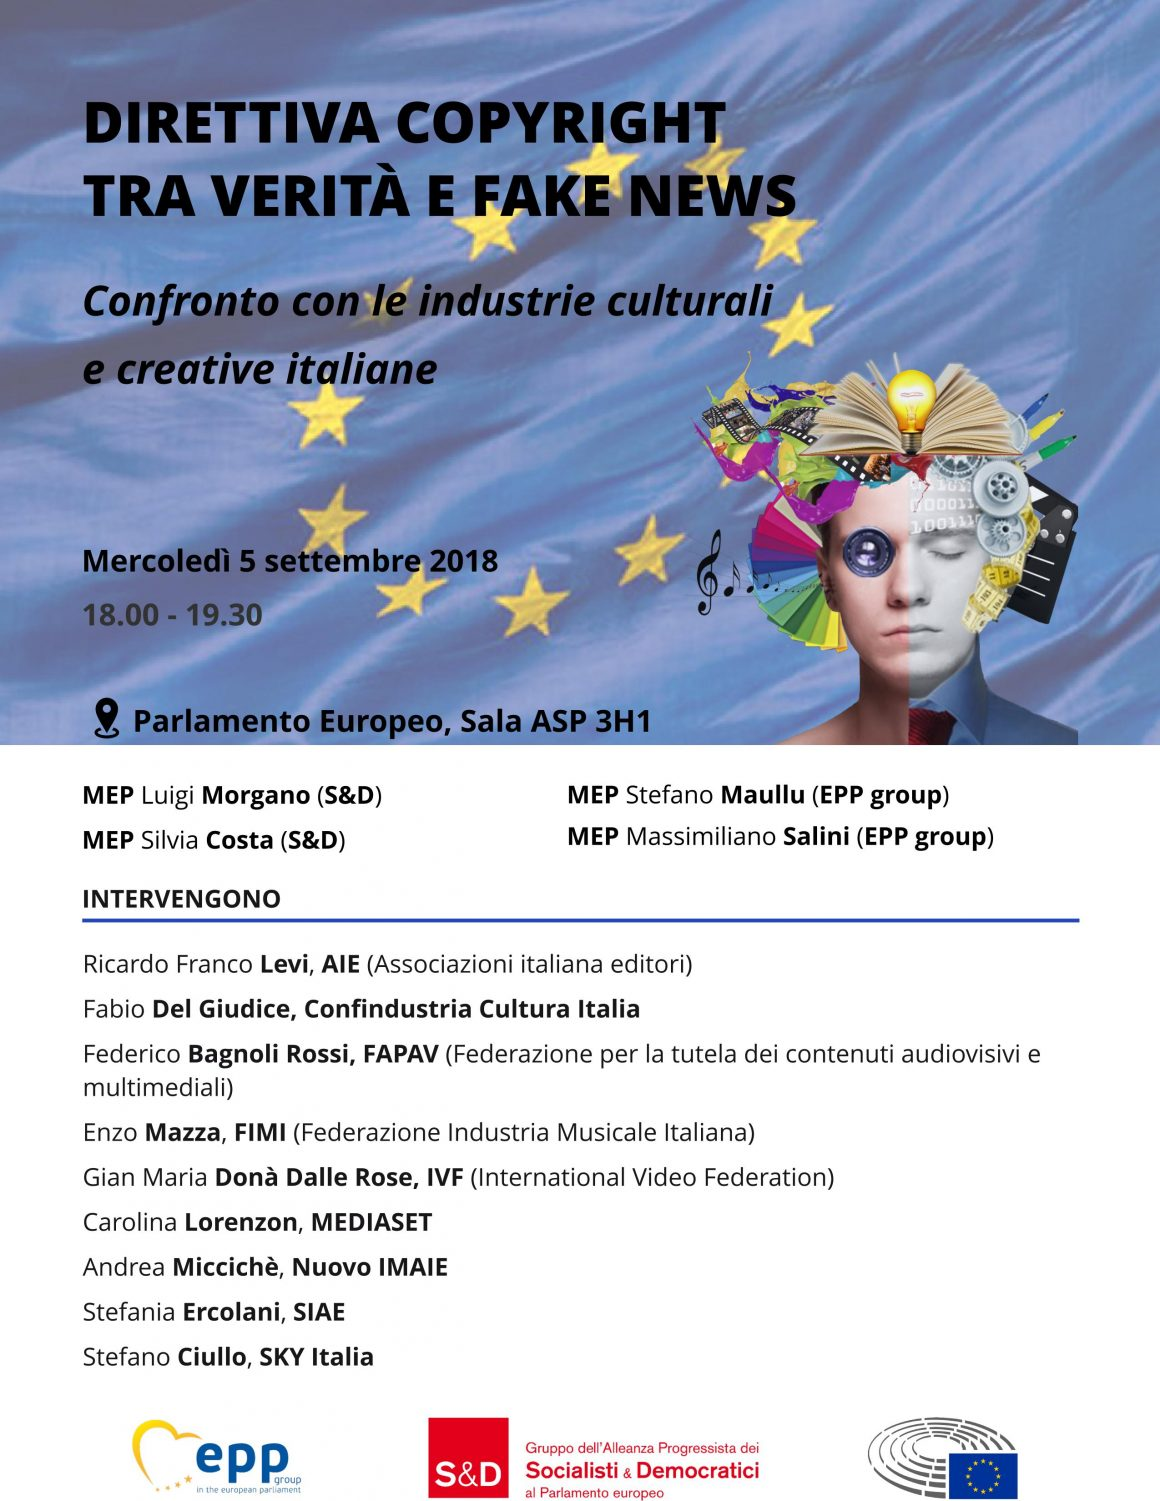 copyright directive fake news